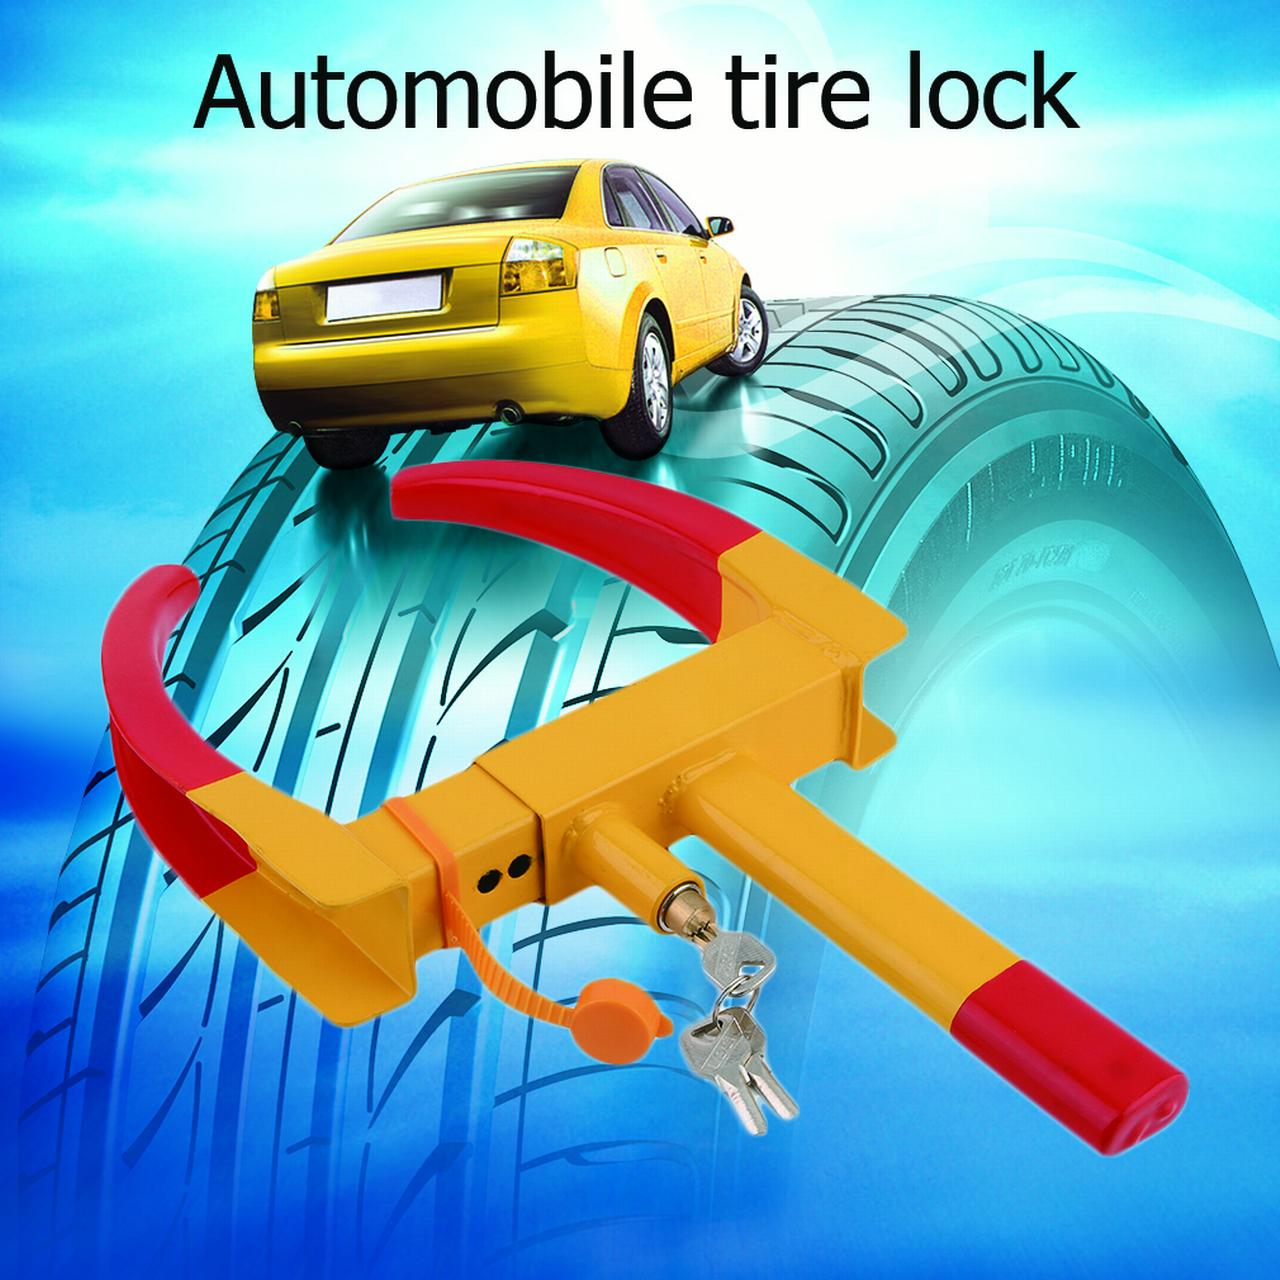 Lock Hardware New Clamp Boot Tire Claw Trailer Truck Anti-Theft Towing Auto Wheel Lock Red& Yellow